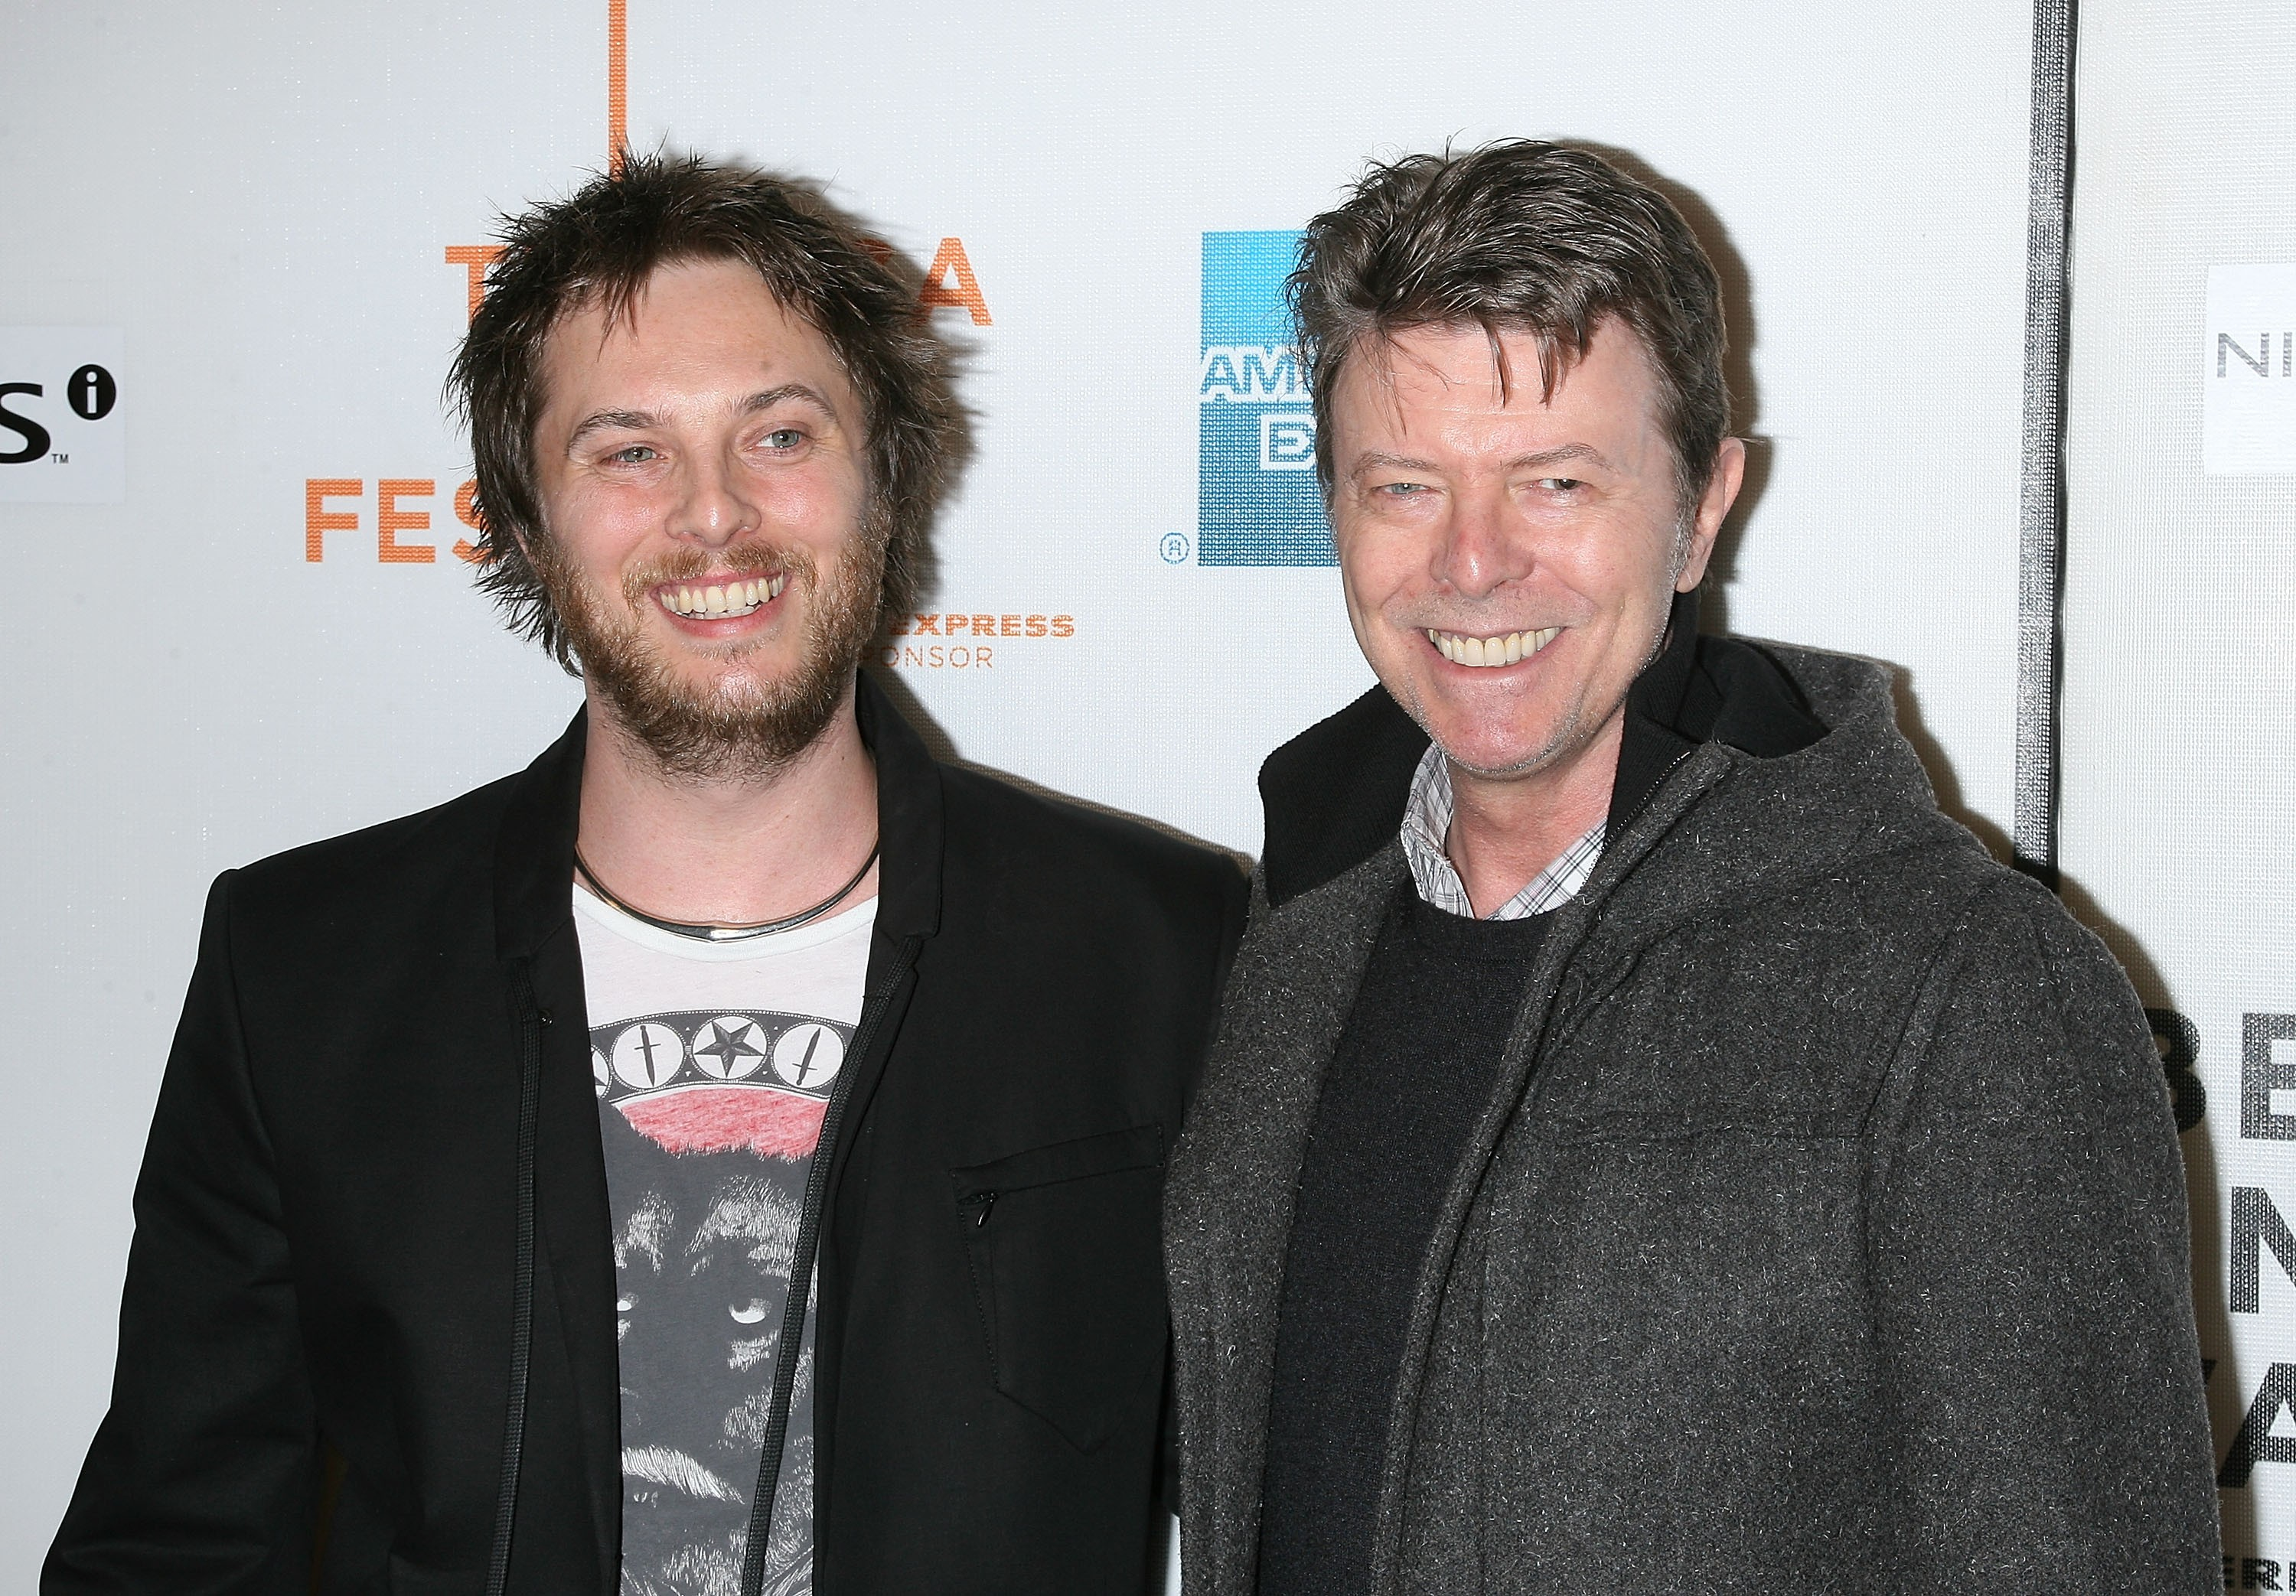 Duncan Jones com o pai, David Bowie, em 2009 (Foto: Getty Images / Jim Spellman)